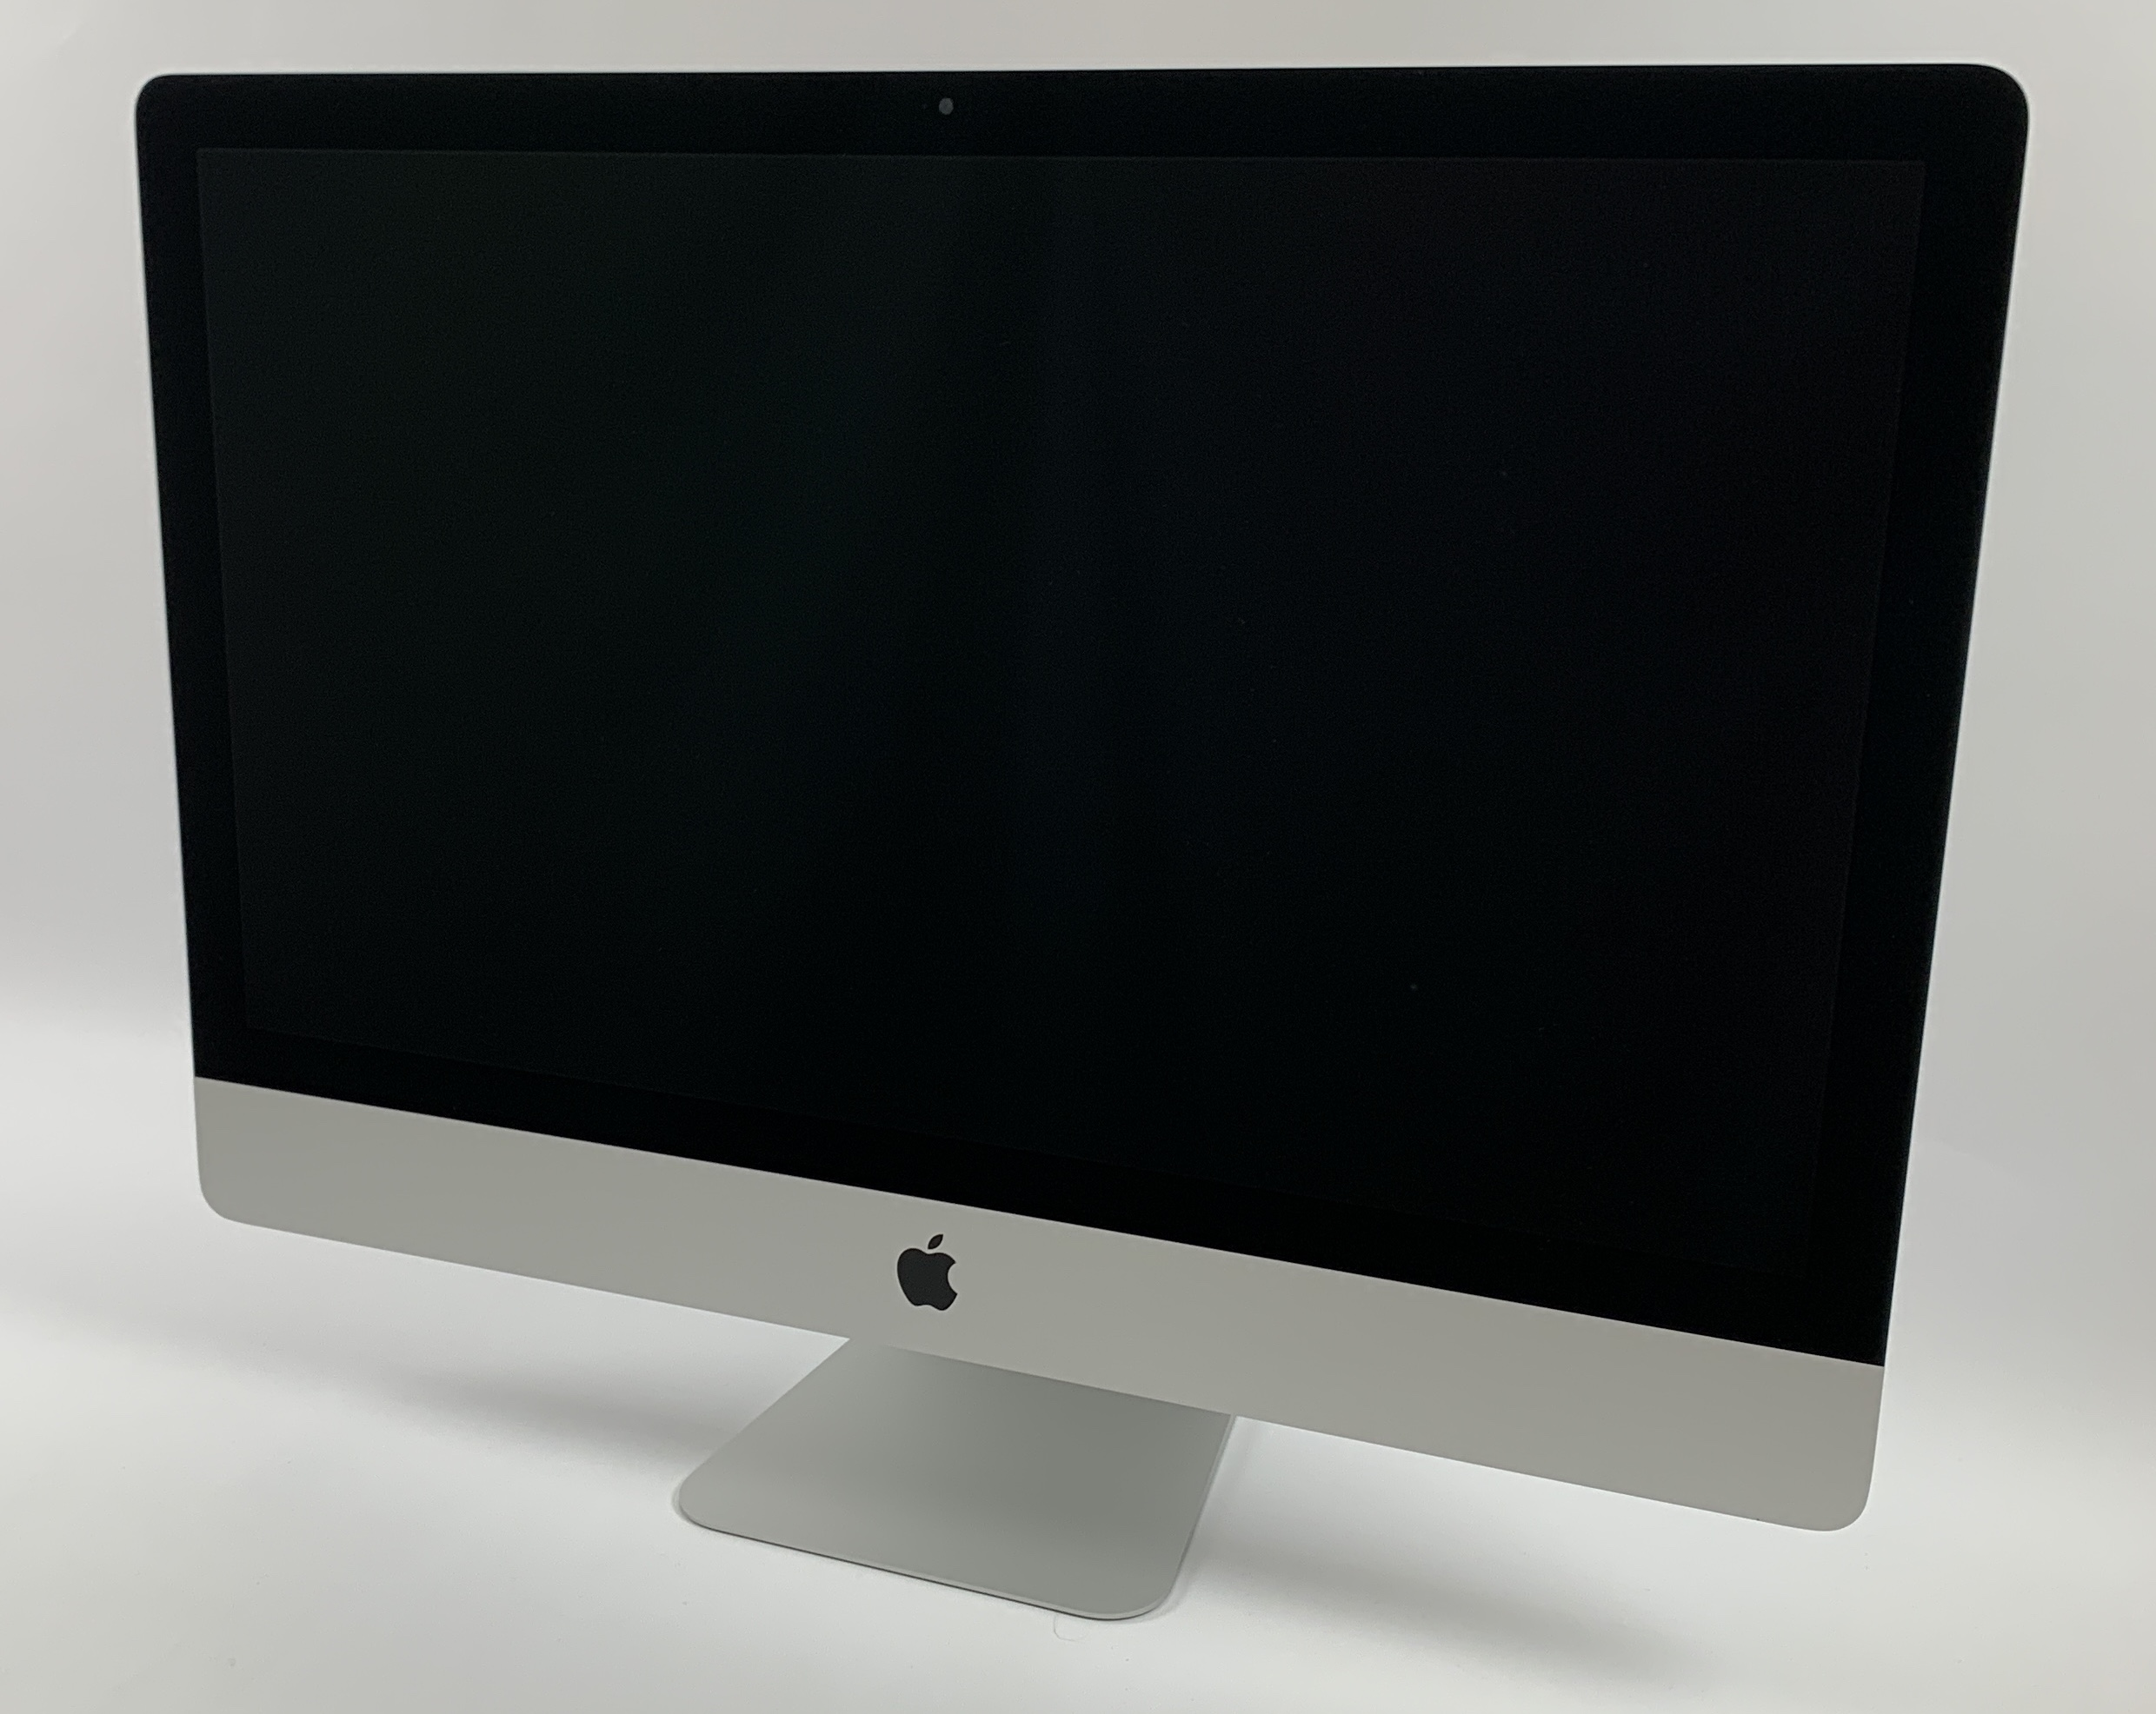 "iMac 27"" Retina 5K Mid 2020 (Intel 6-Core i5 3.3 GHz 128 GB RAM 512 GB SSD), Intel 6-Core i5 3.3 GHz, 128 GB RAM, 512 GB SSD, Bild 1"